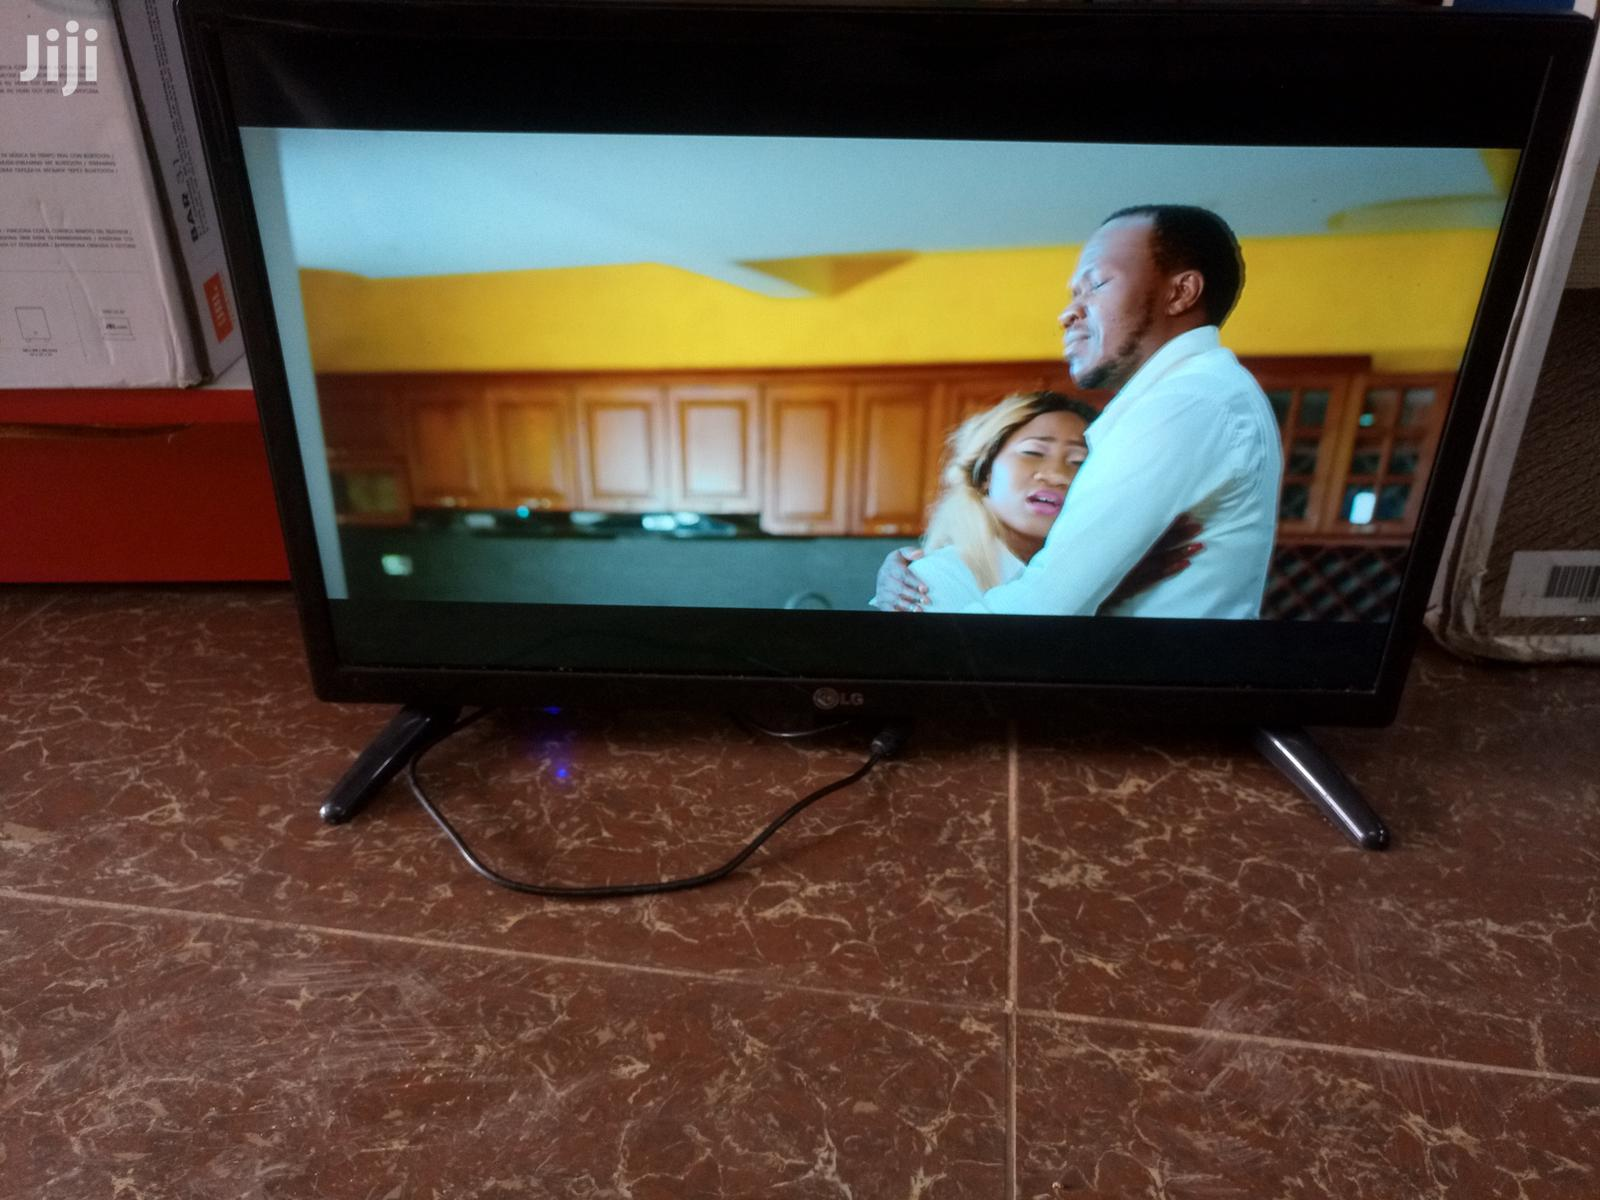 LG LED Flat Screen TV 26 Inches | TV & DVD Equipment for sale in Kampala, Central Region, Uganda